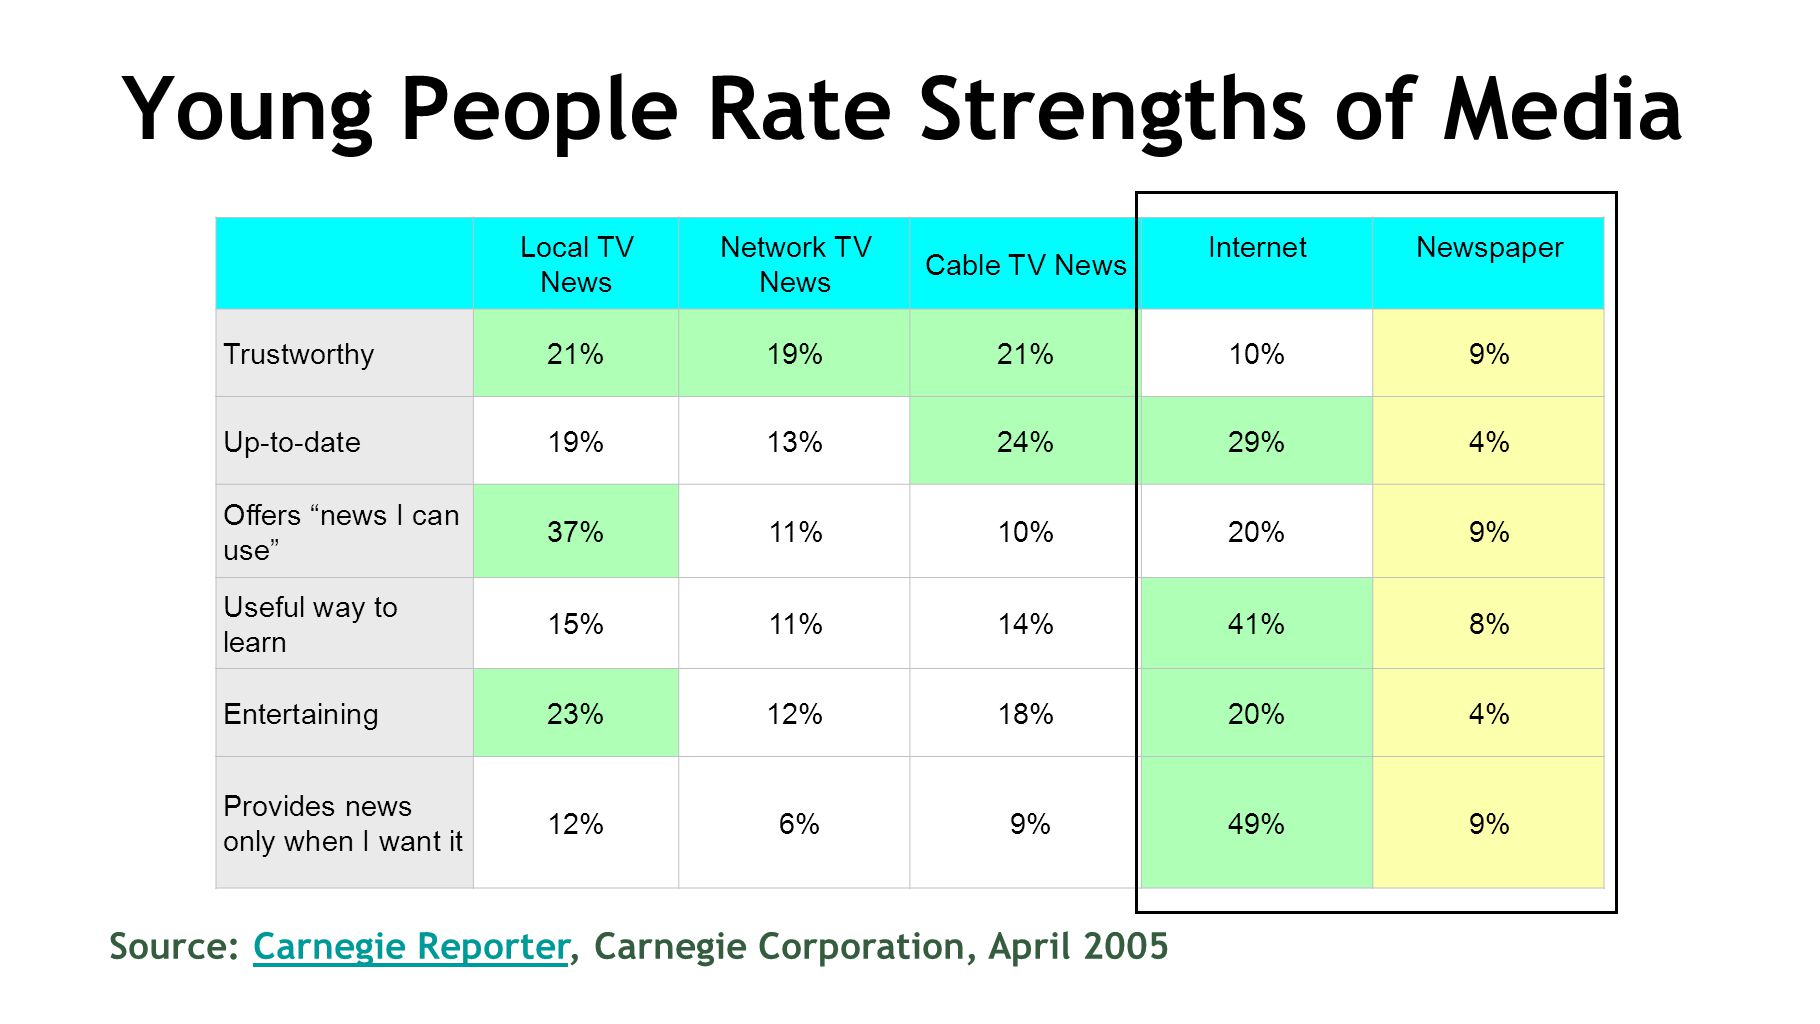 Young People Rate Strengths of Media Source: Carnegie Reporter, Carnegie Corporation, April 2005Carnegie Reporter Local TV News Network TV News Cable TV News InternetNewspaper Trustworthy21%19%21%10%9% Up-to-date19%13%24%29%4% Offers news I can use 37%11%10%20%9% Useful way to learn 15%11%14%41%8% Entertaining23%12%18%20%4% Provides news only when I want it 12% 6% 9%49%9%